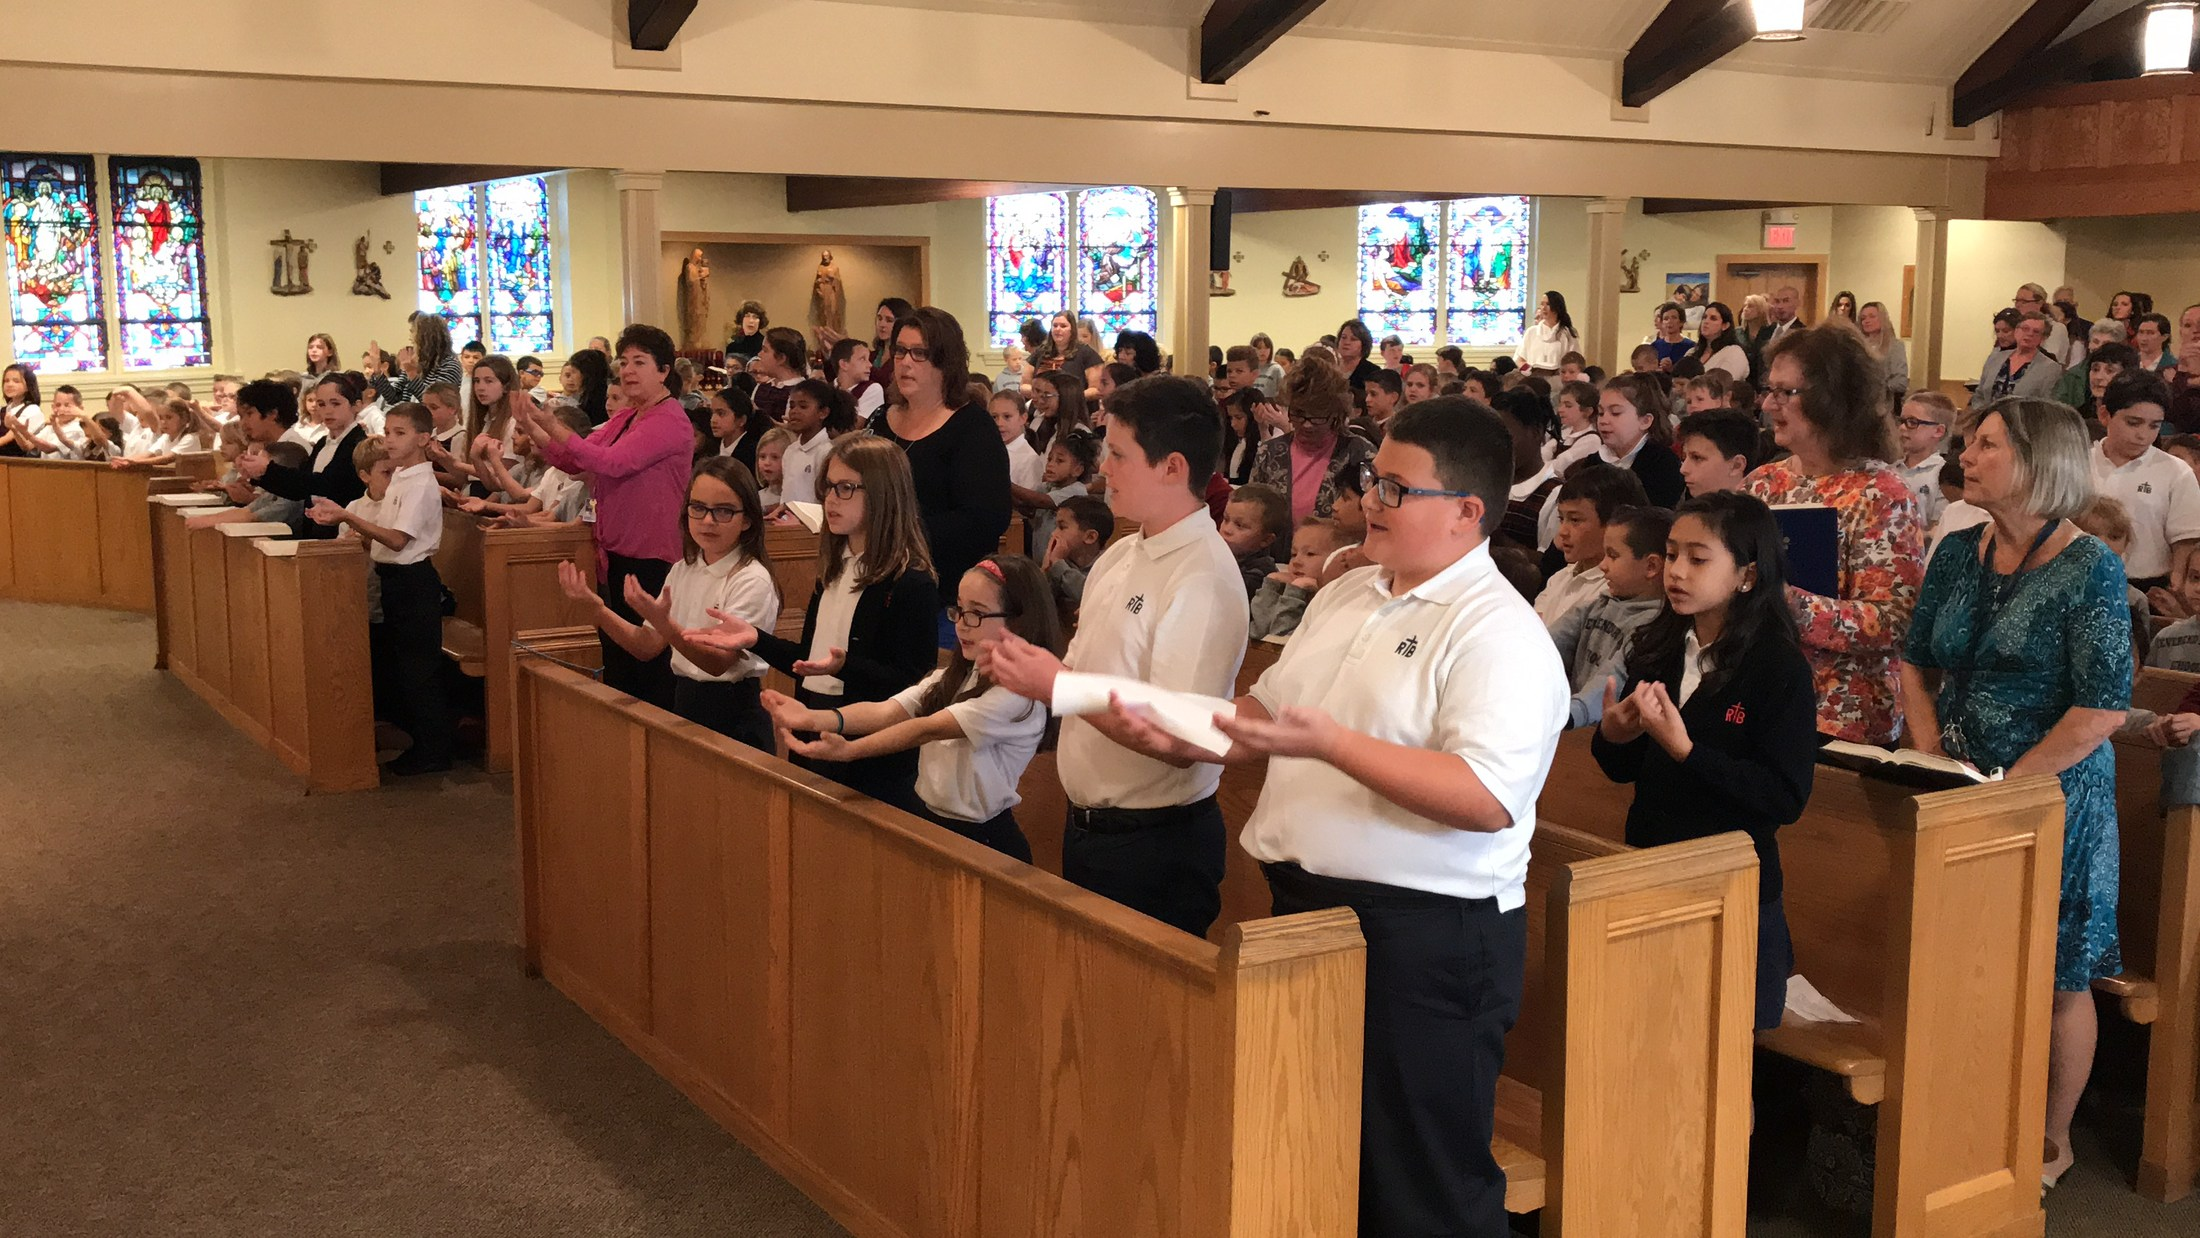 Students singing during mass